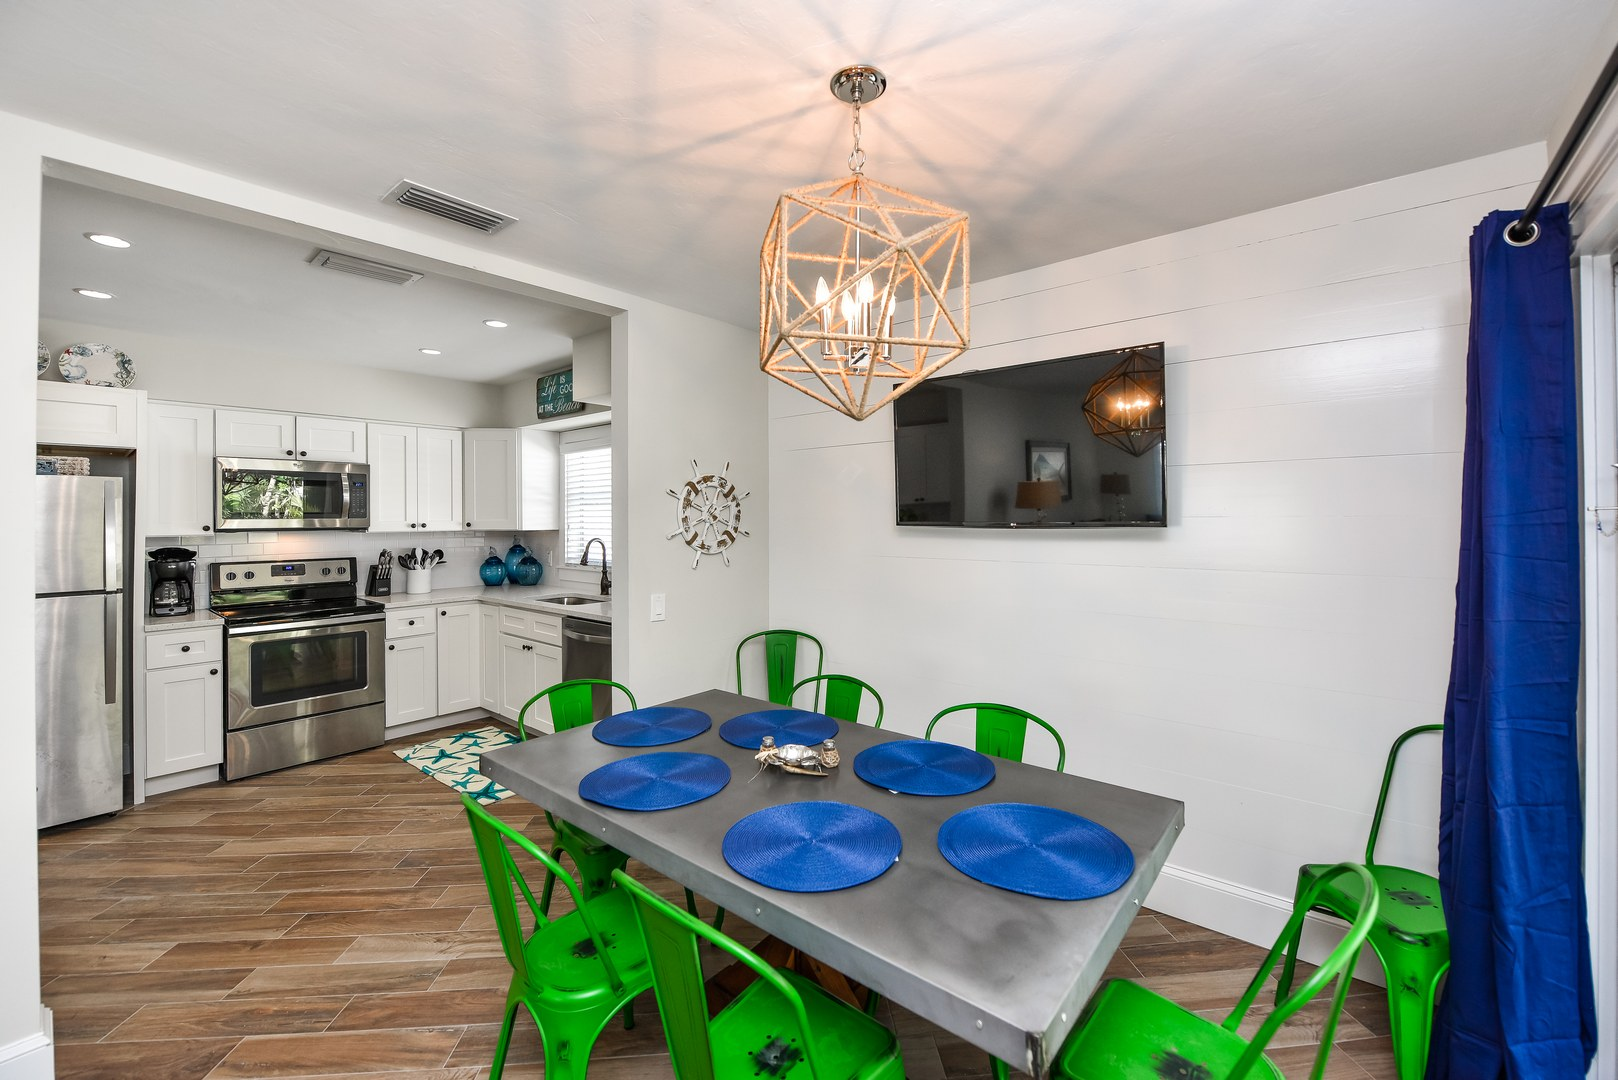 Dining Next to Kitchen for easy access - TV